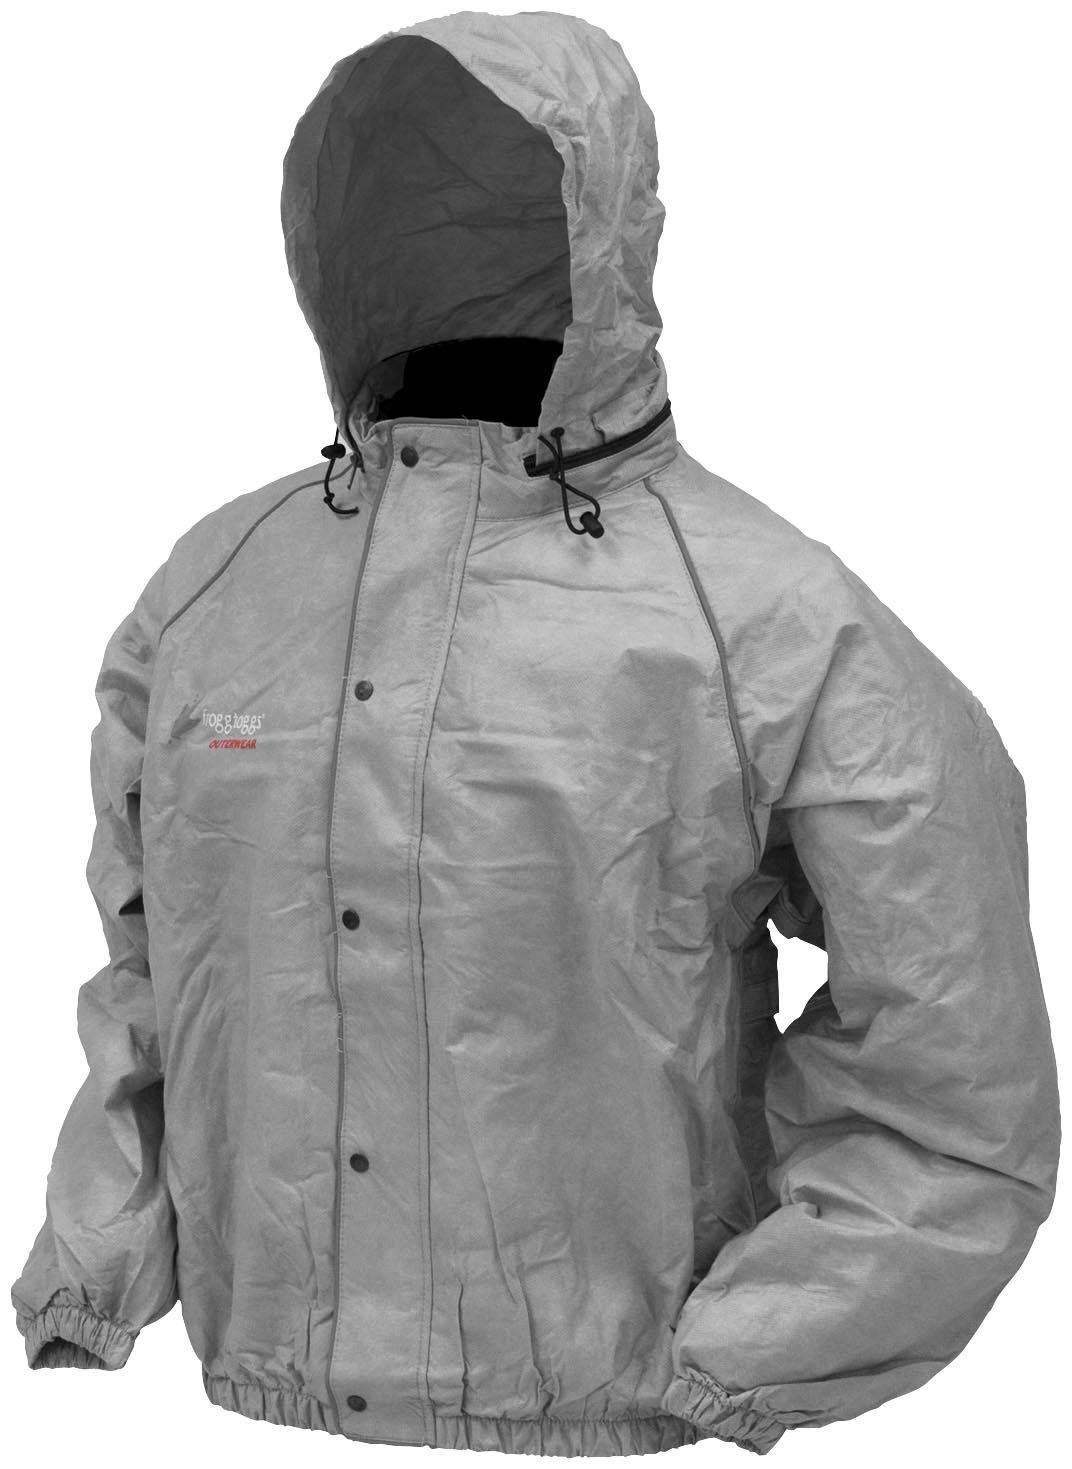 Road Toad Rain Jacket, Gray, X-Large Frogg Toggs FT63132-07XL